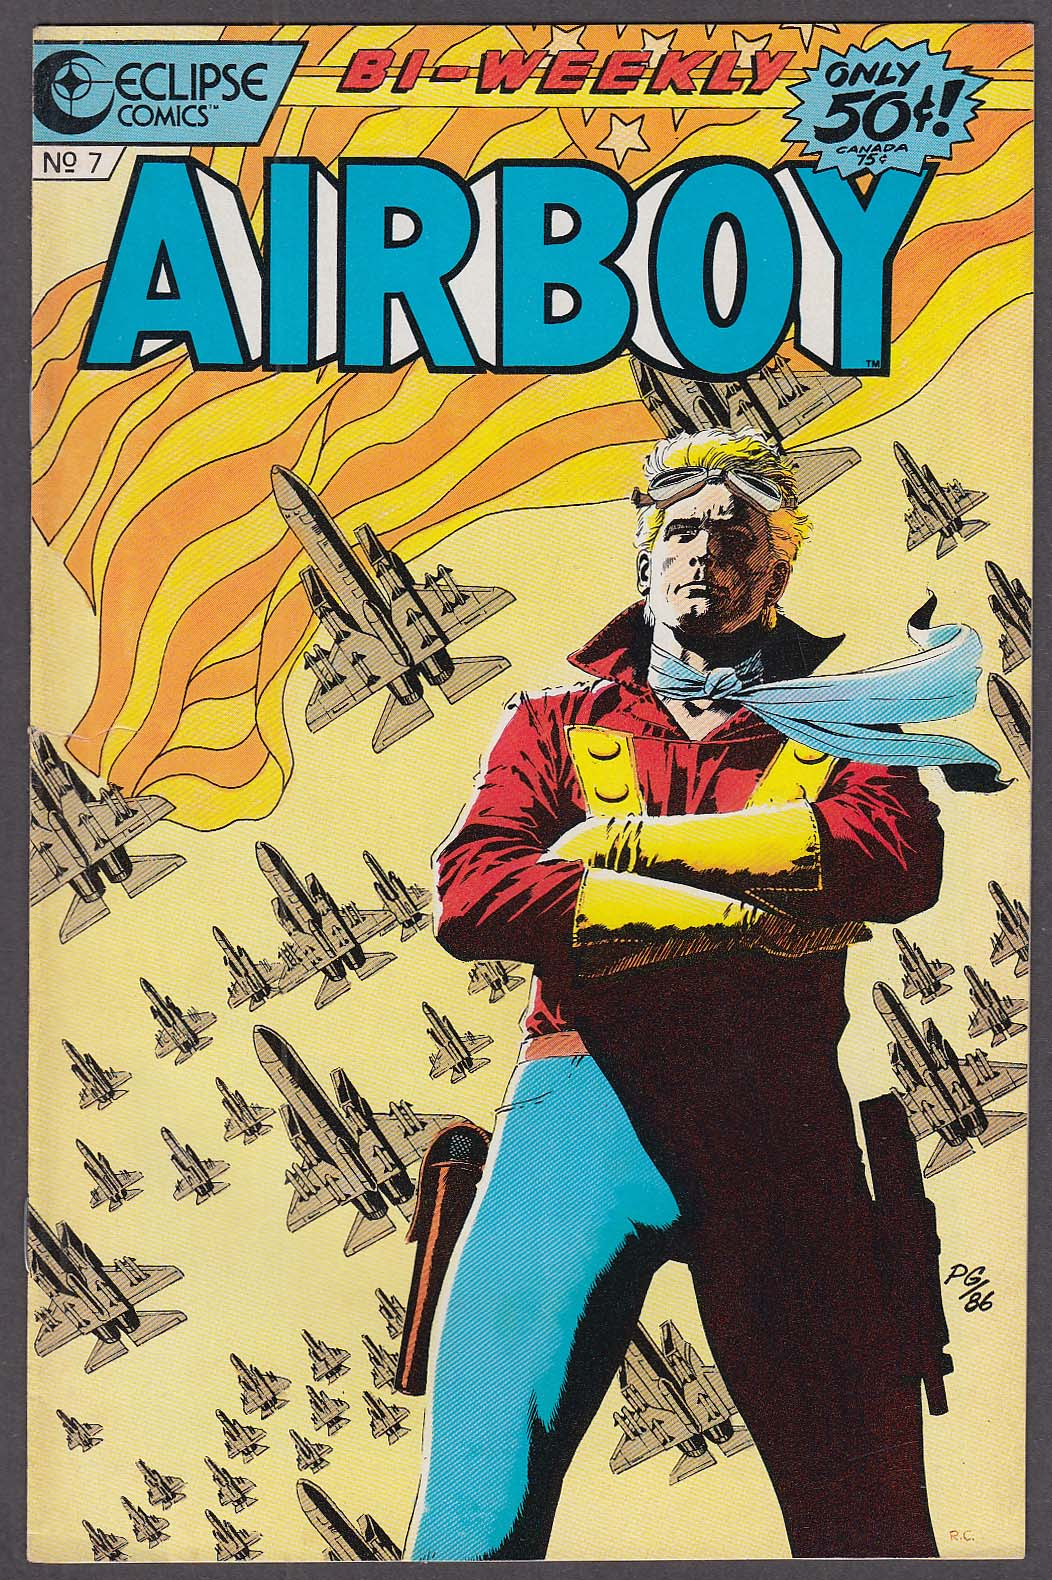 AIRBOY #7 Eclipse comic book 10/7 1986